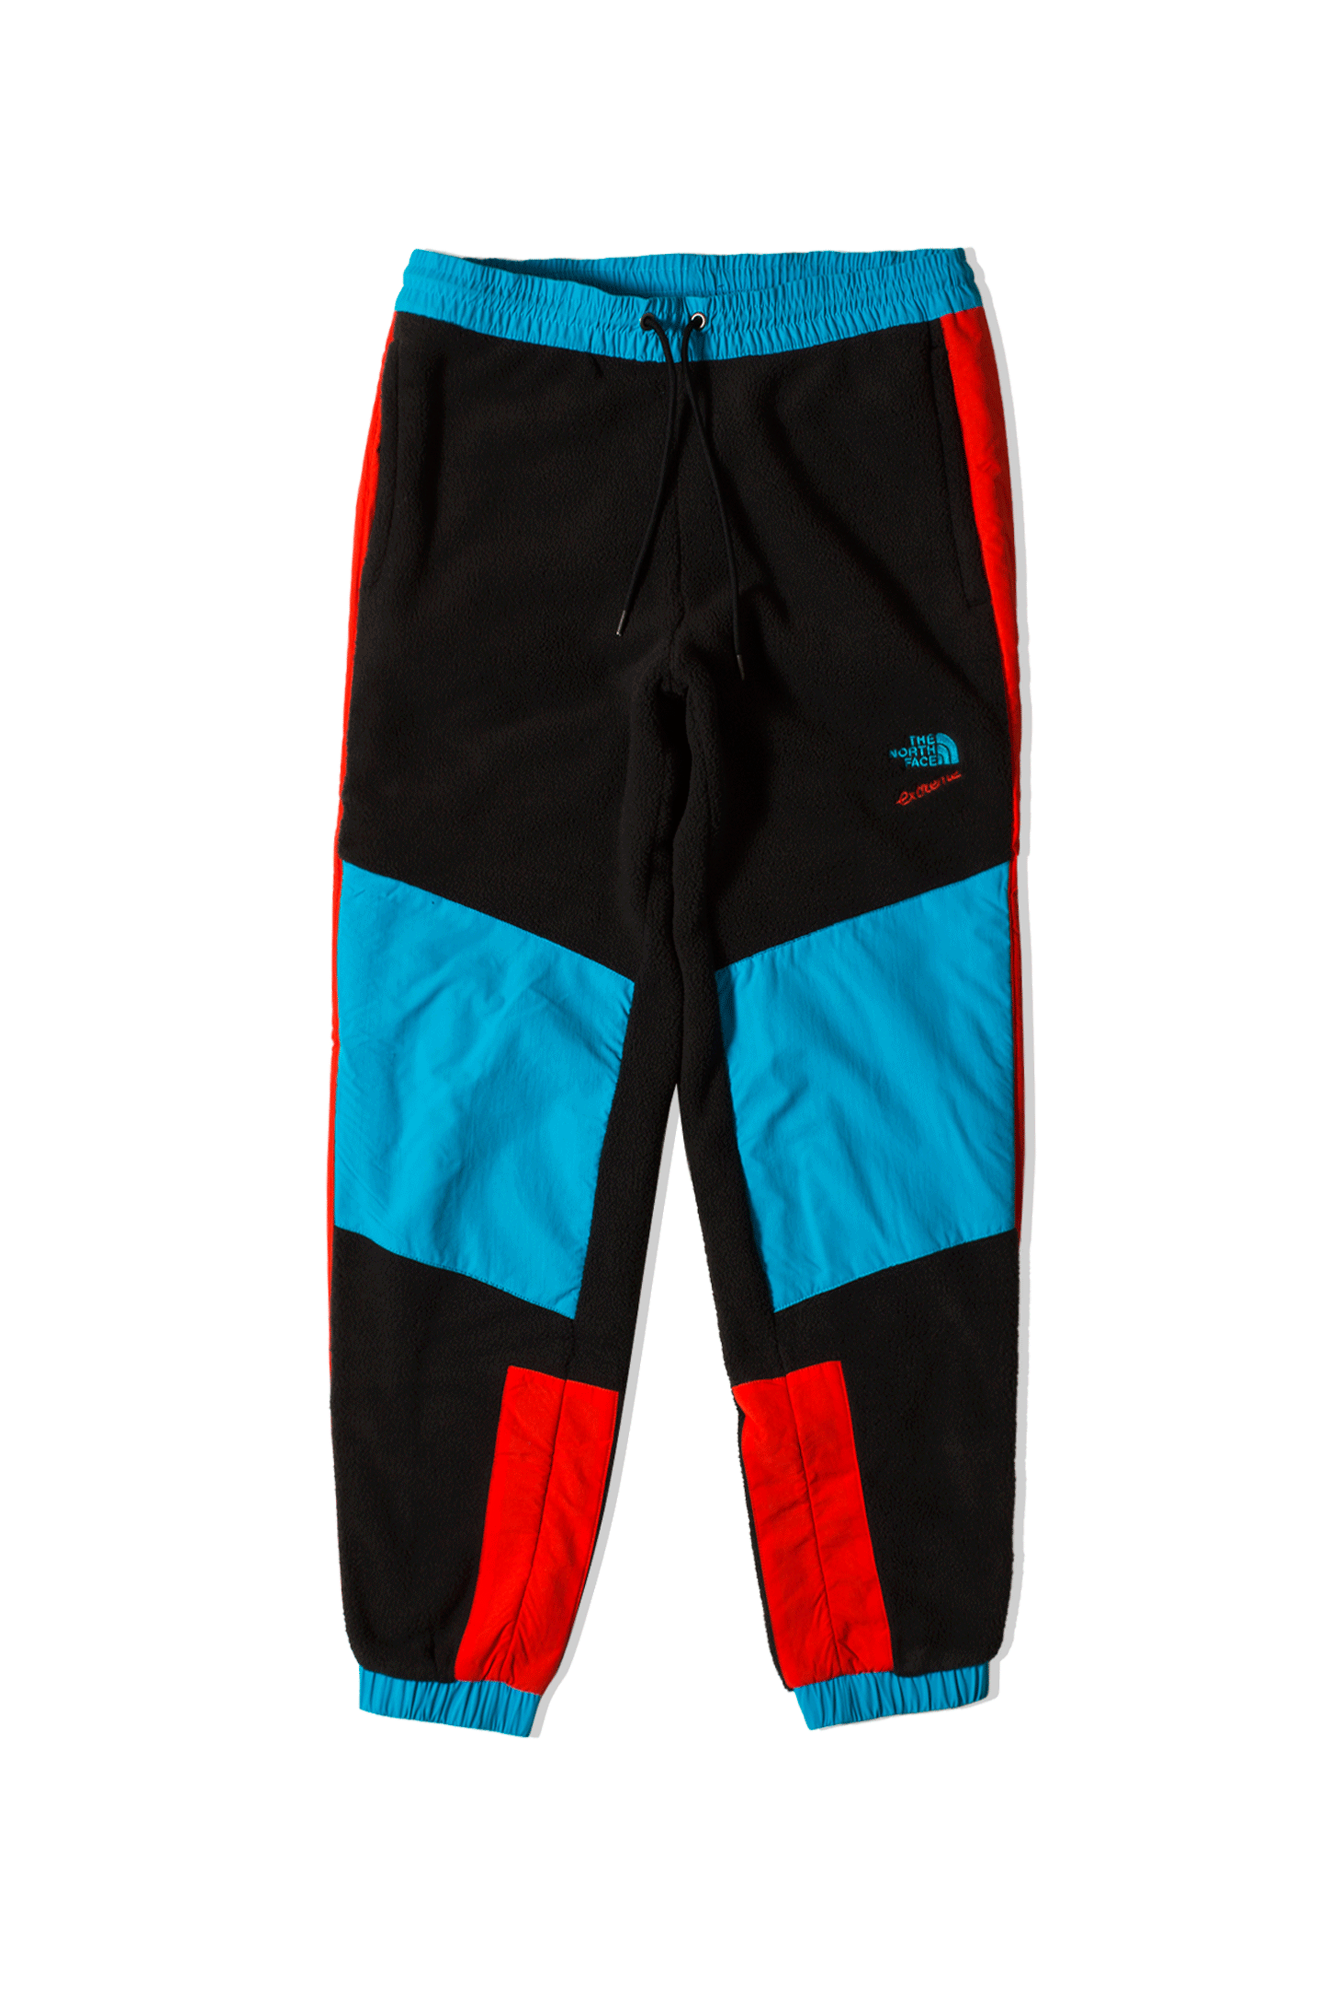 90 Extreme Fleece Pant Black